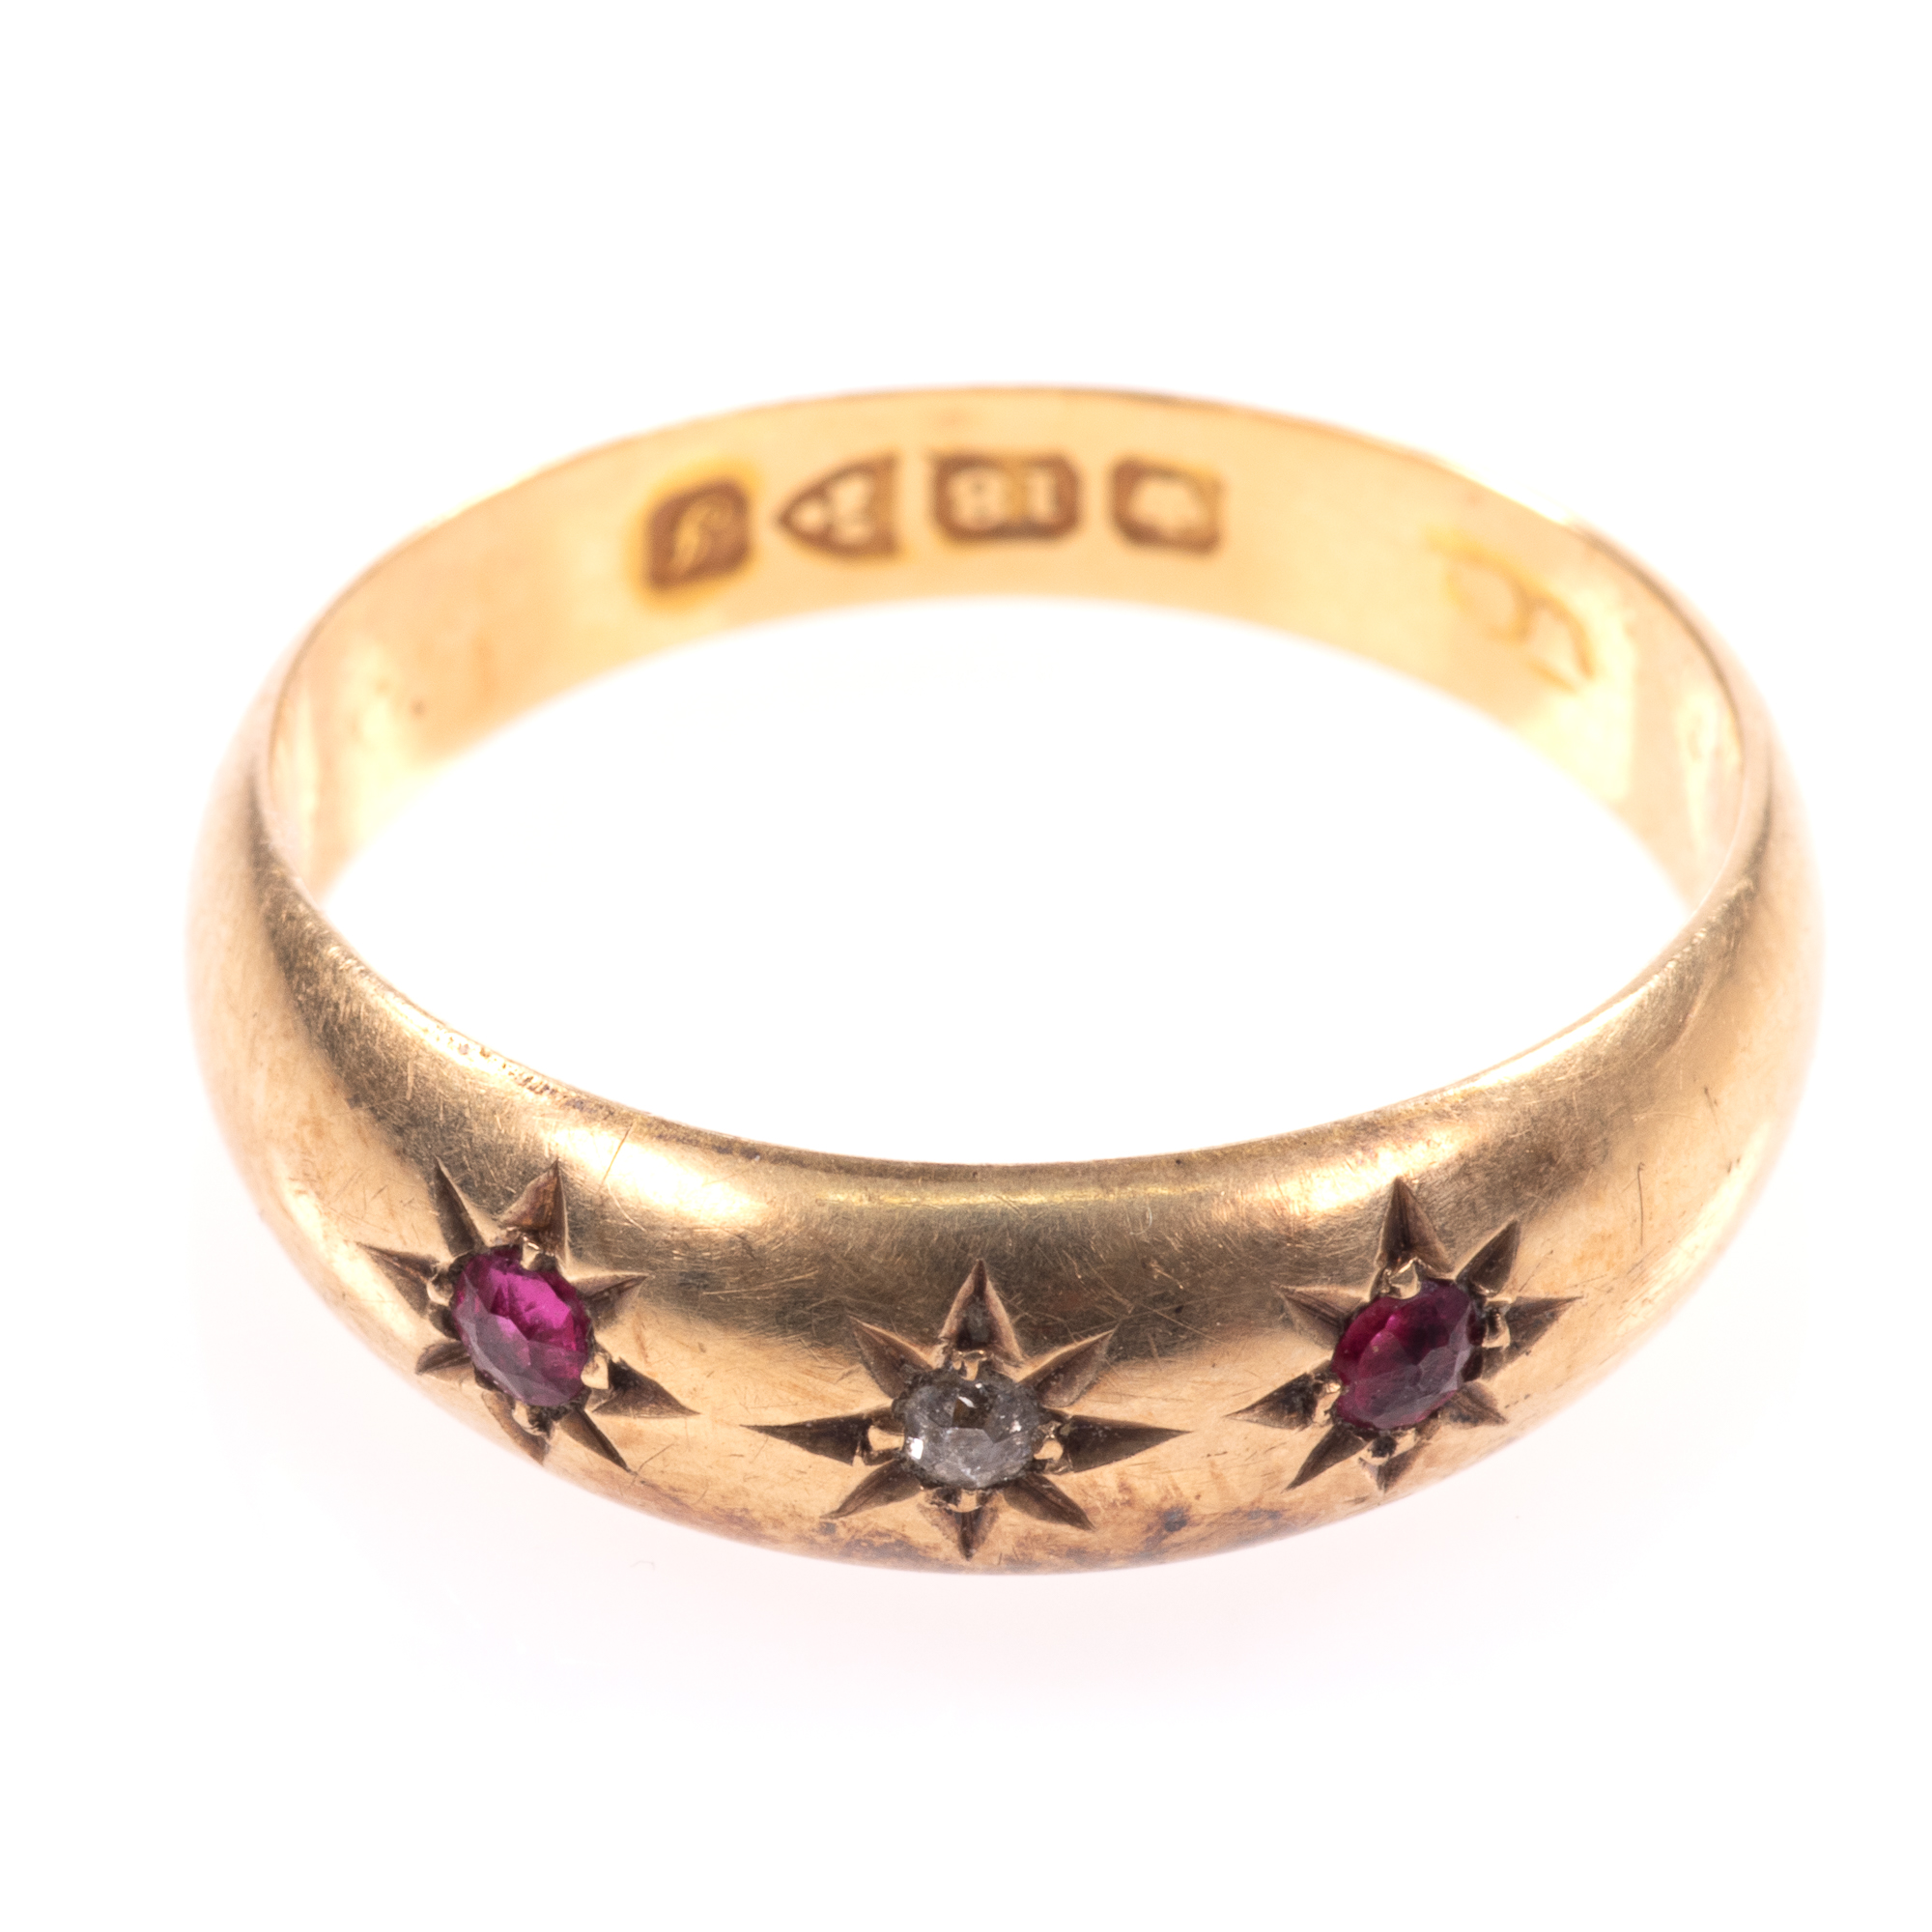 18ct Gold Edwardian Ruby & Diamond Ring Chester 1909 - Image 3 of 8